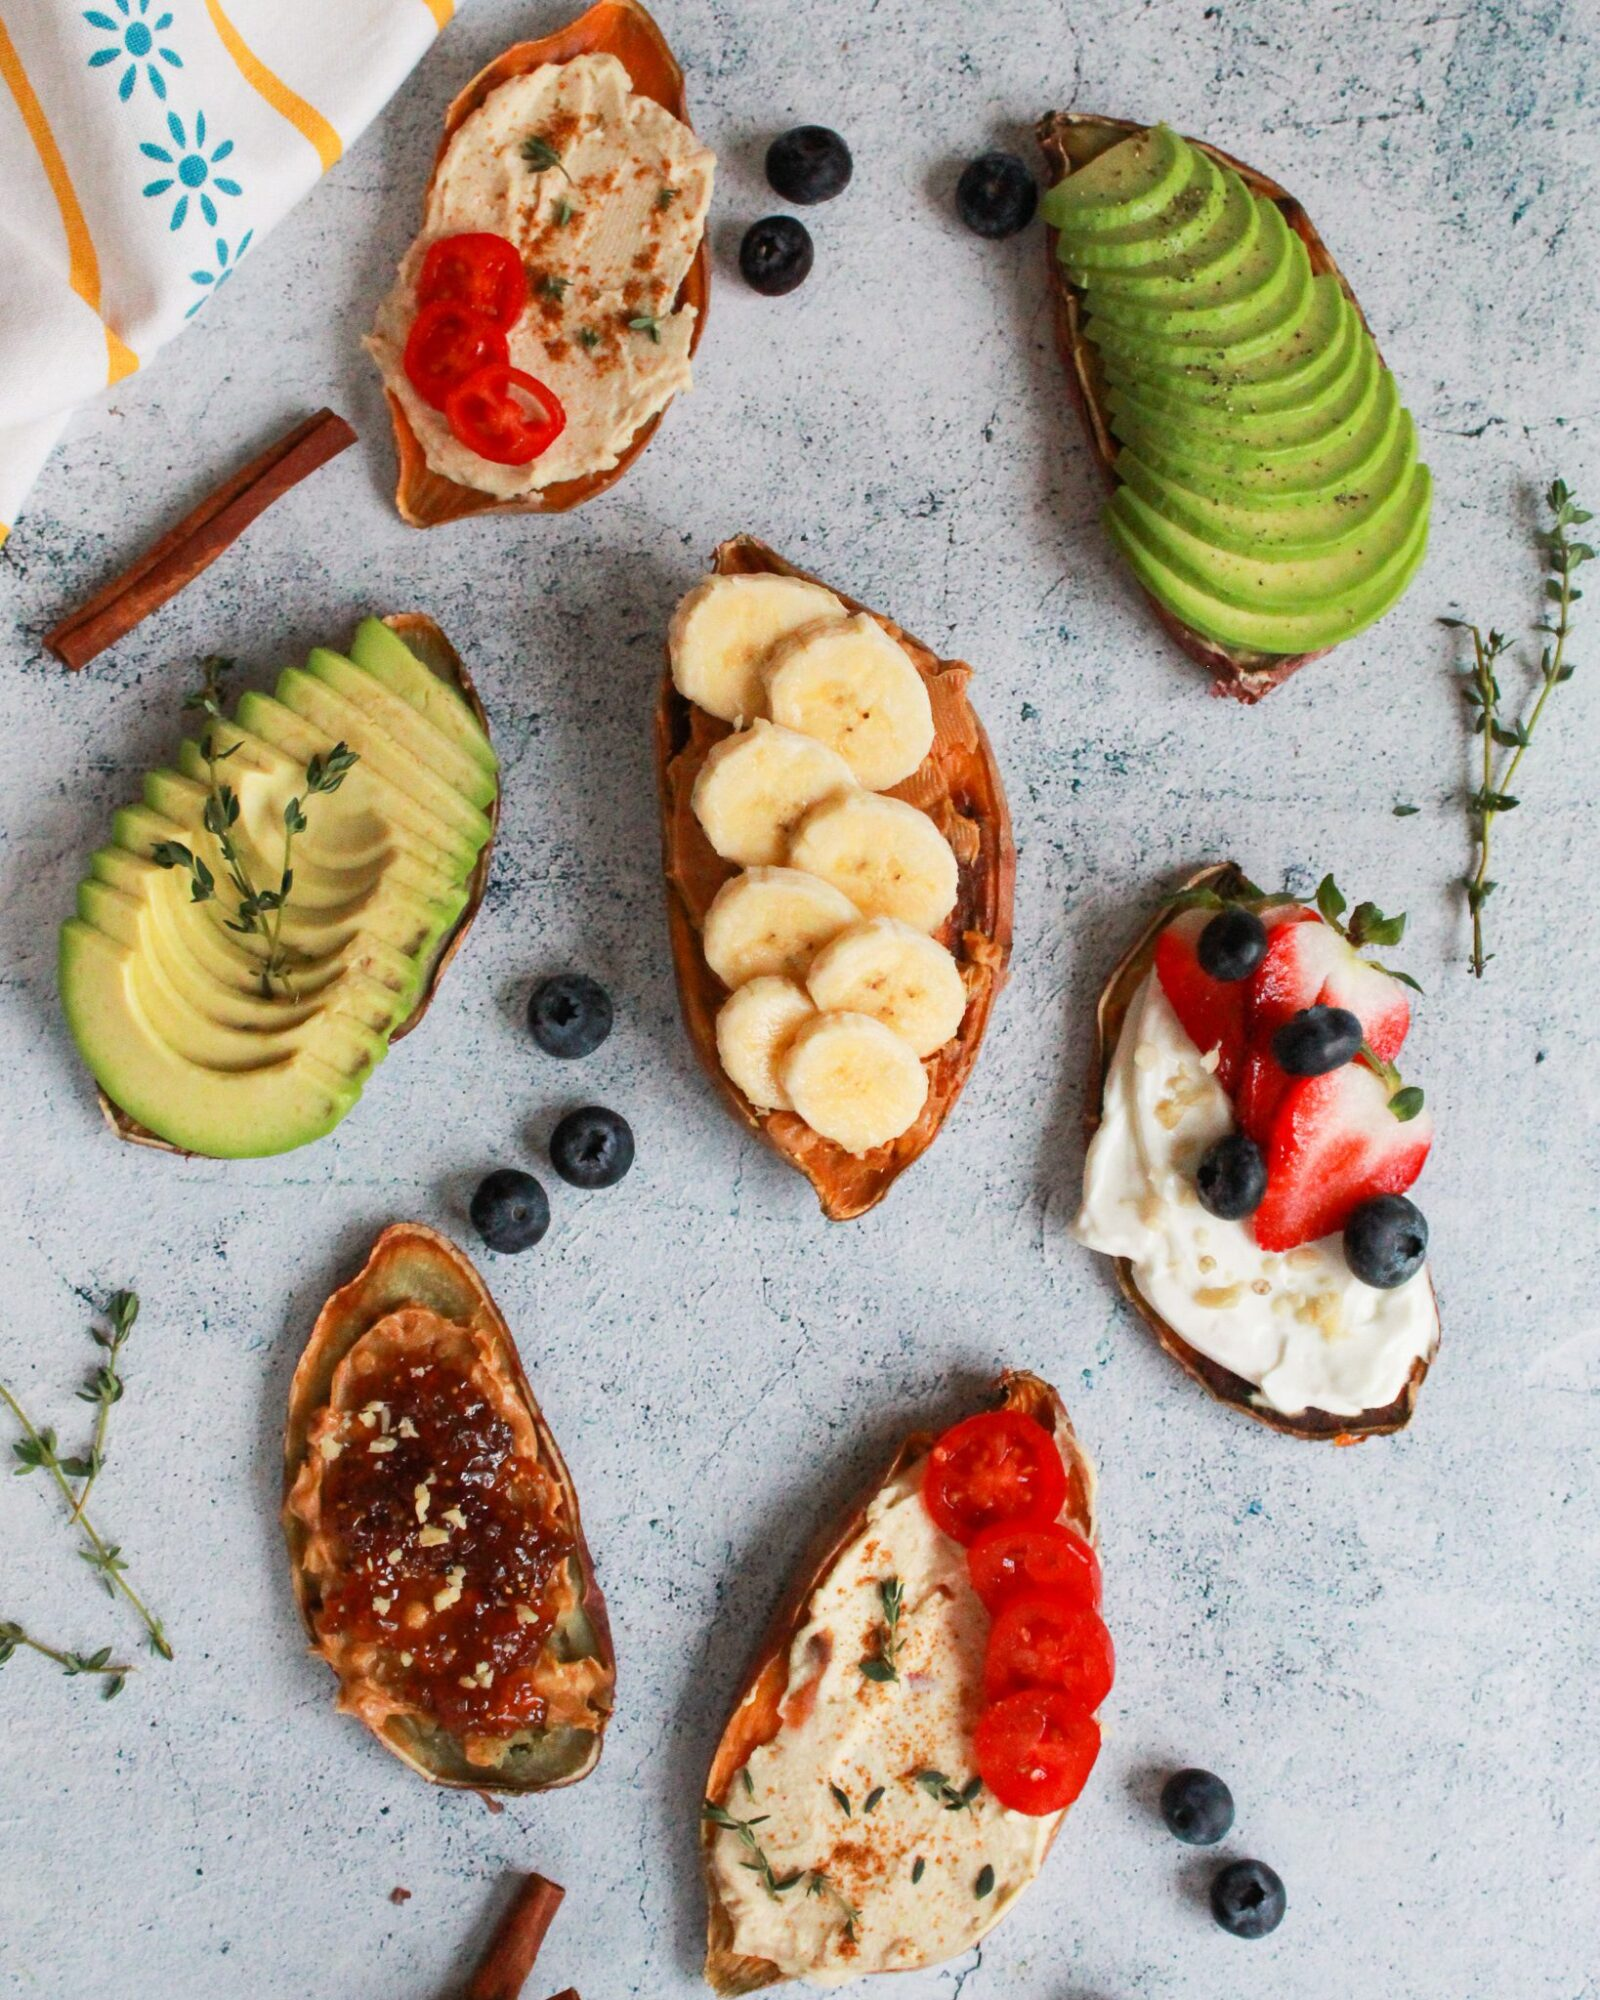 Easy gluten free sweet potato toast with 5 different vegan toppings that are perfect for breakfast or a snack! Perfect for a Whole30, paleo, vegan, gluten free, or anything diet!